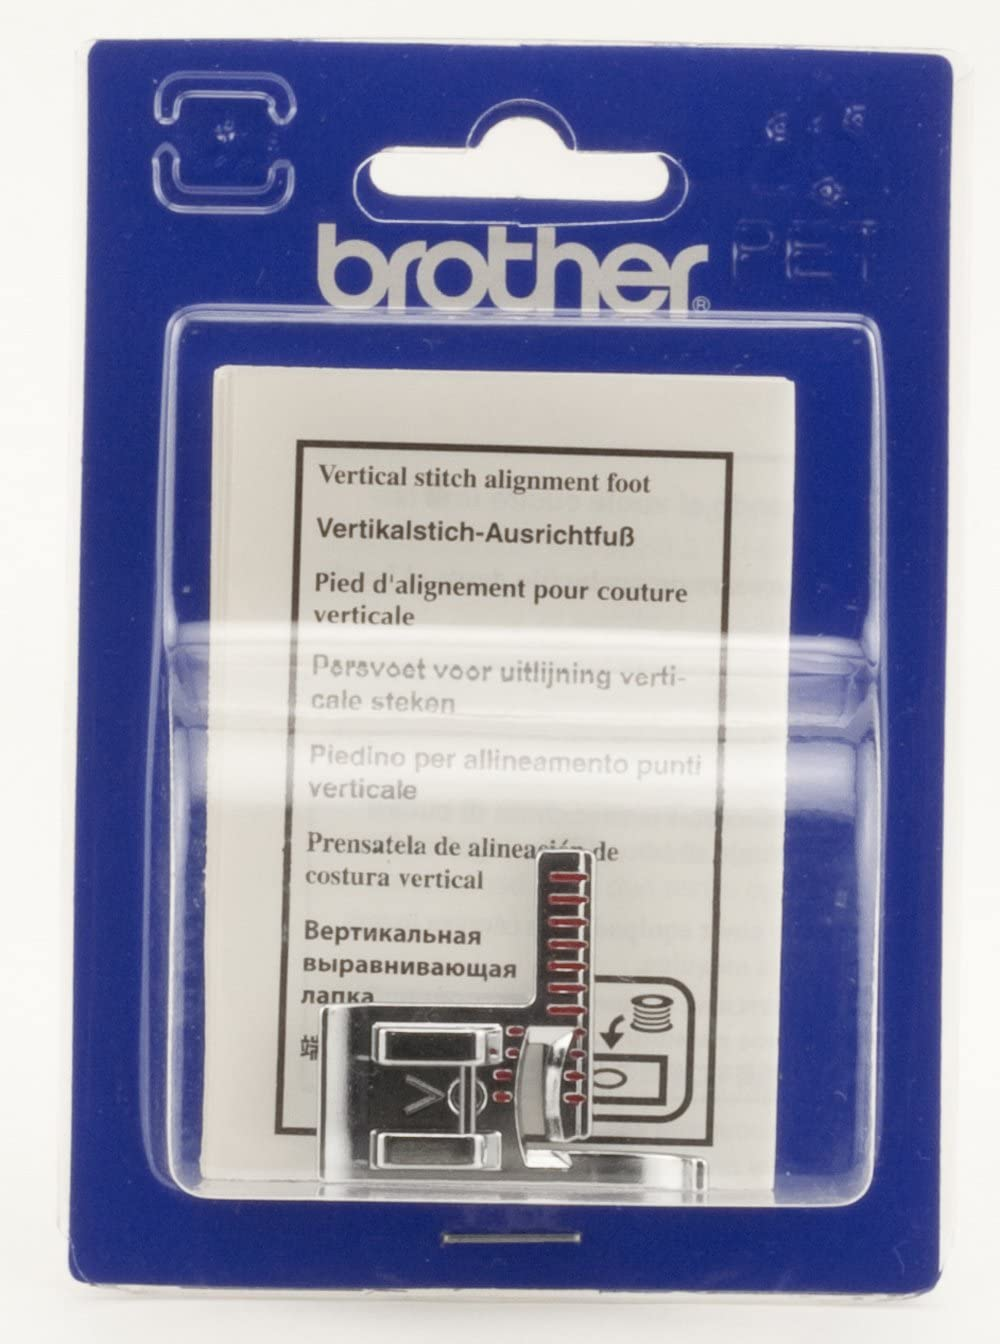 Brother SA189 Vertical Stitch Alignment Foot